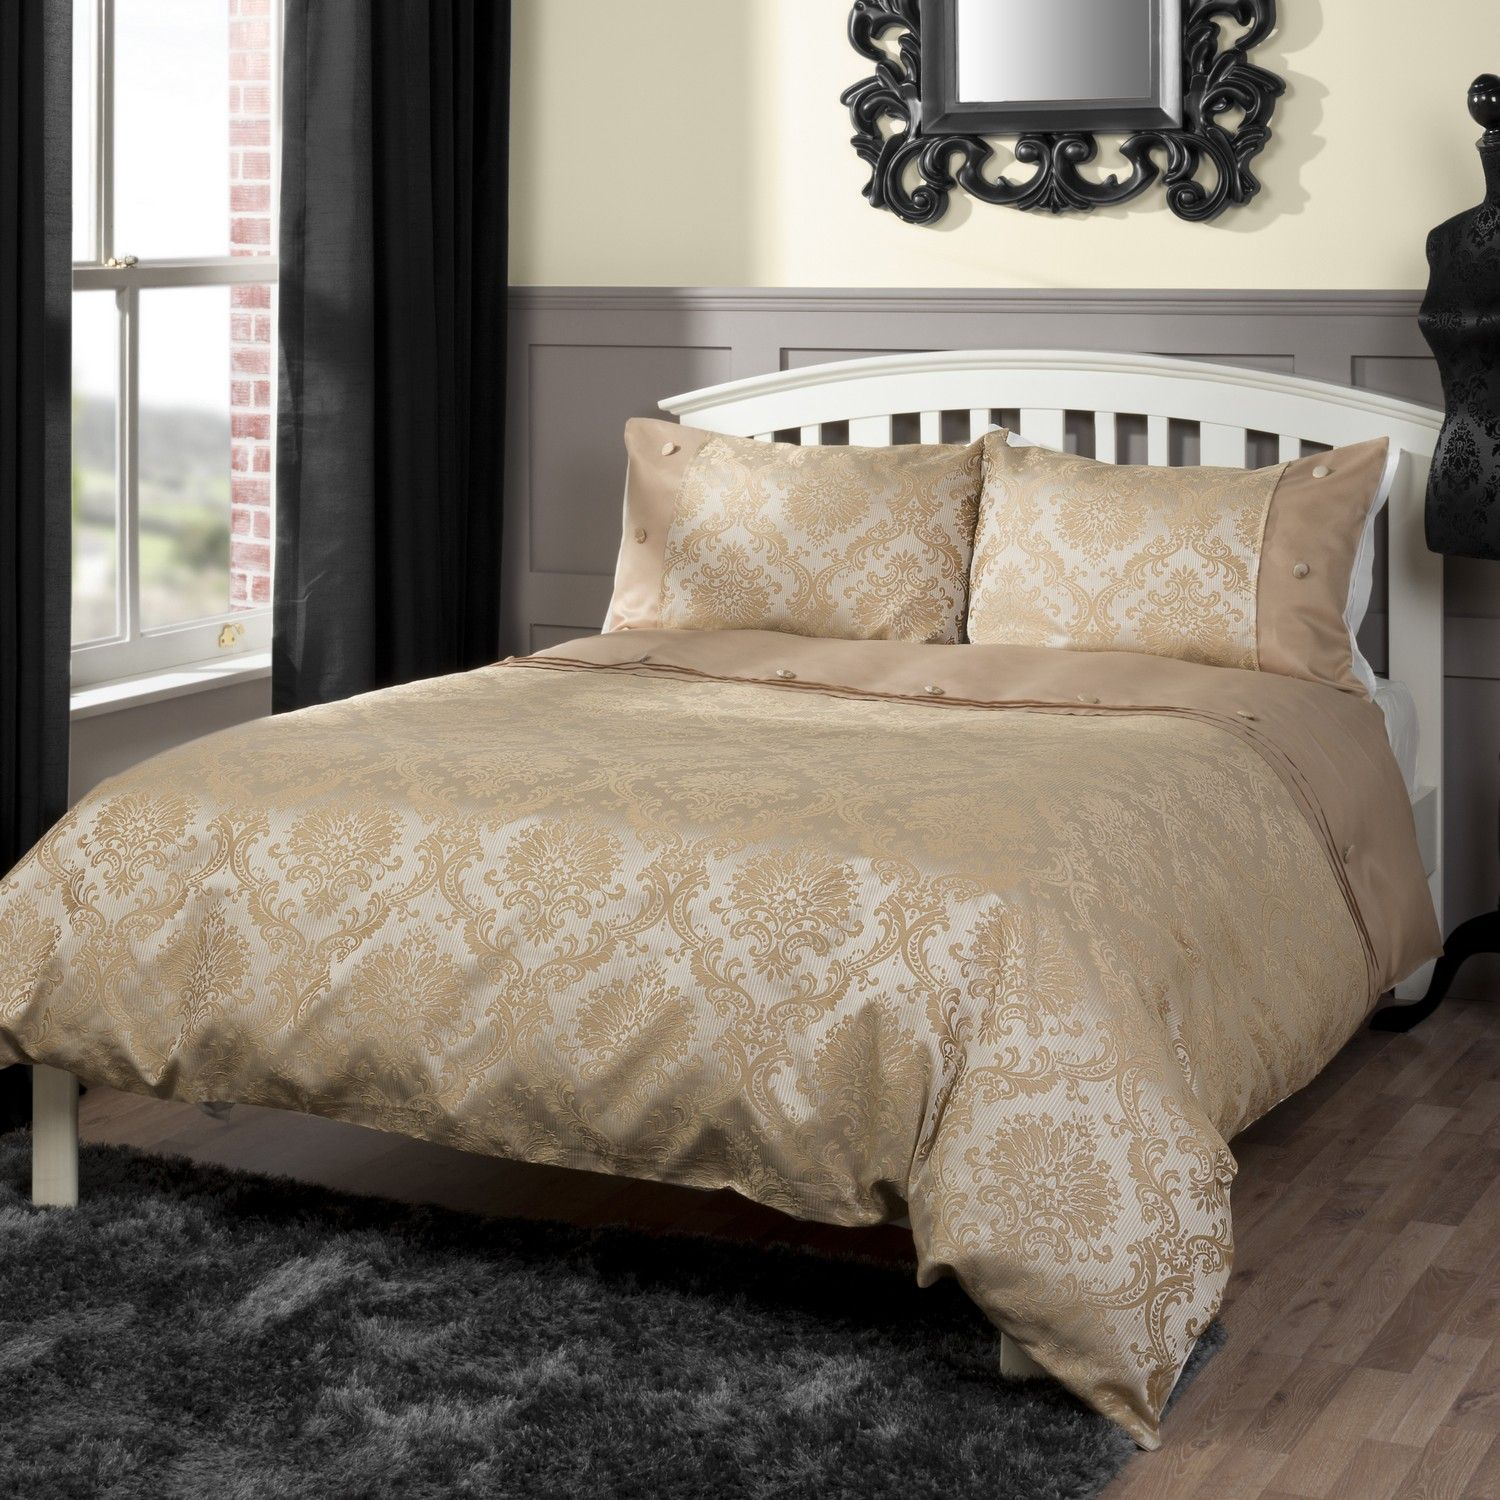 Chadwick Gold Bedding Matching Cushions Available